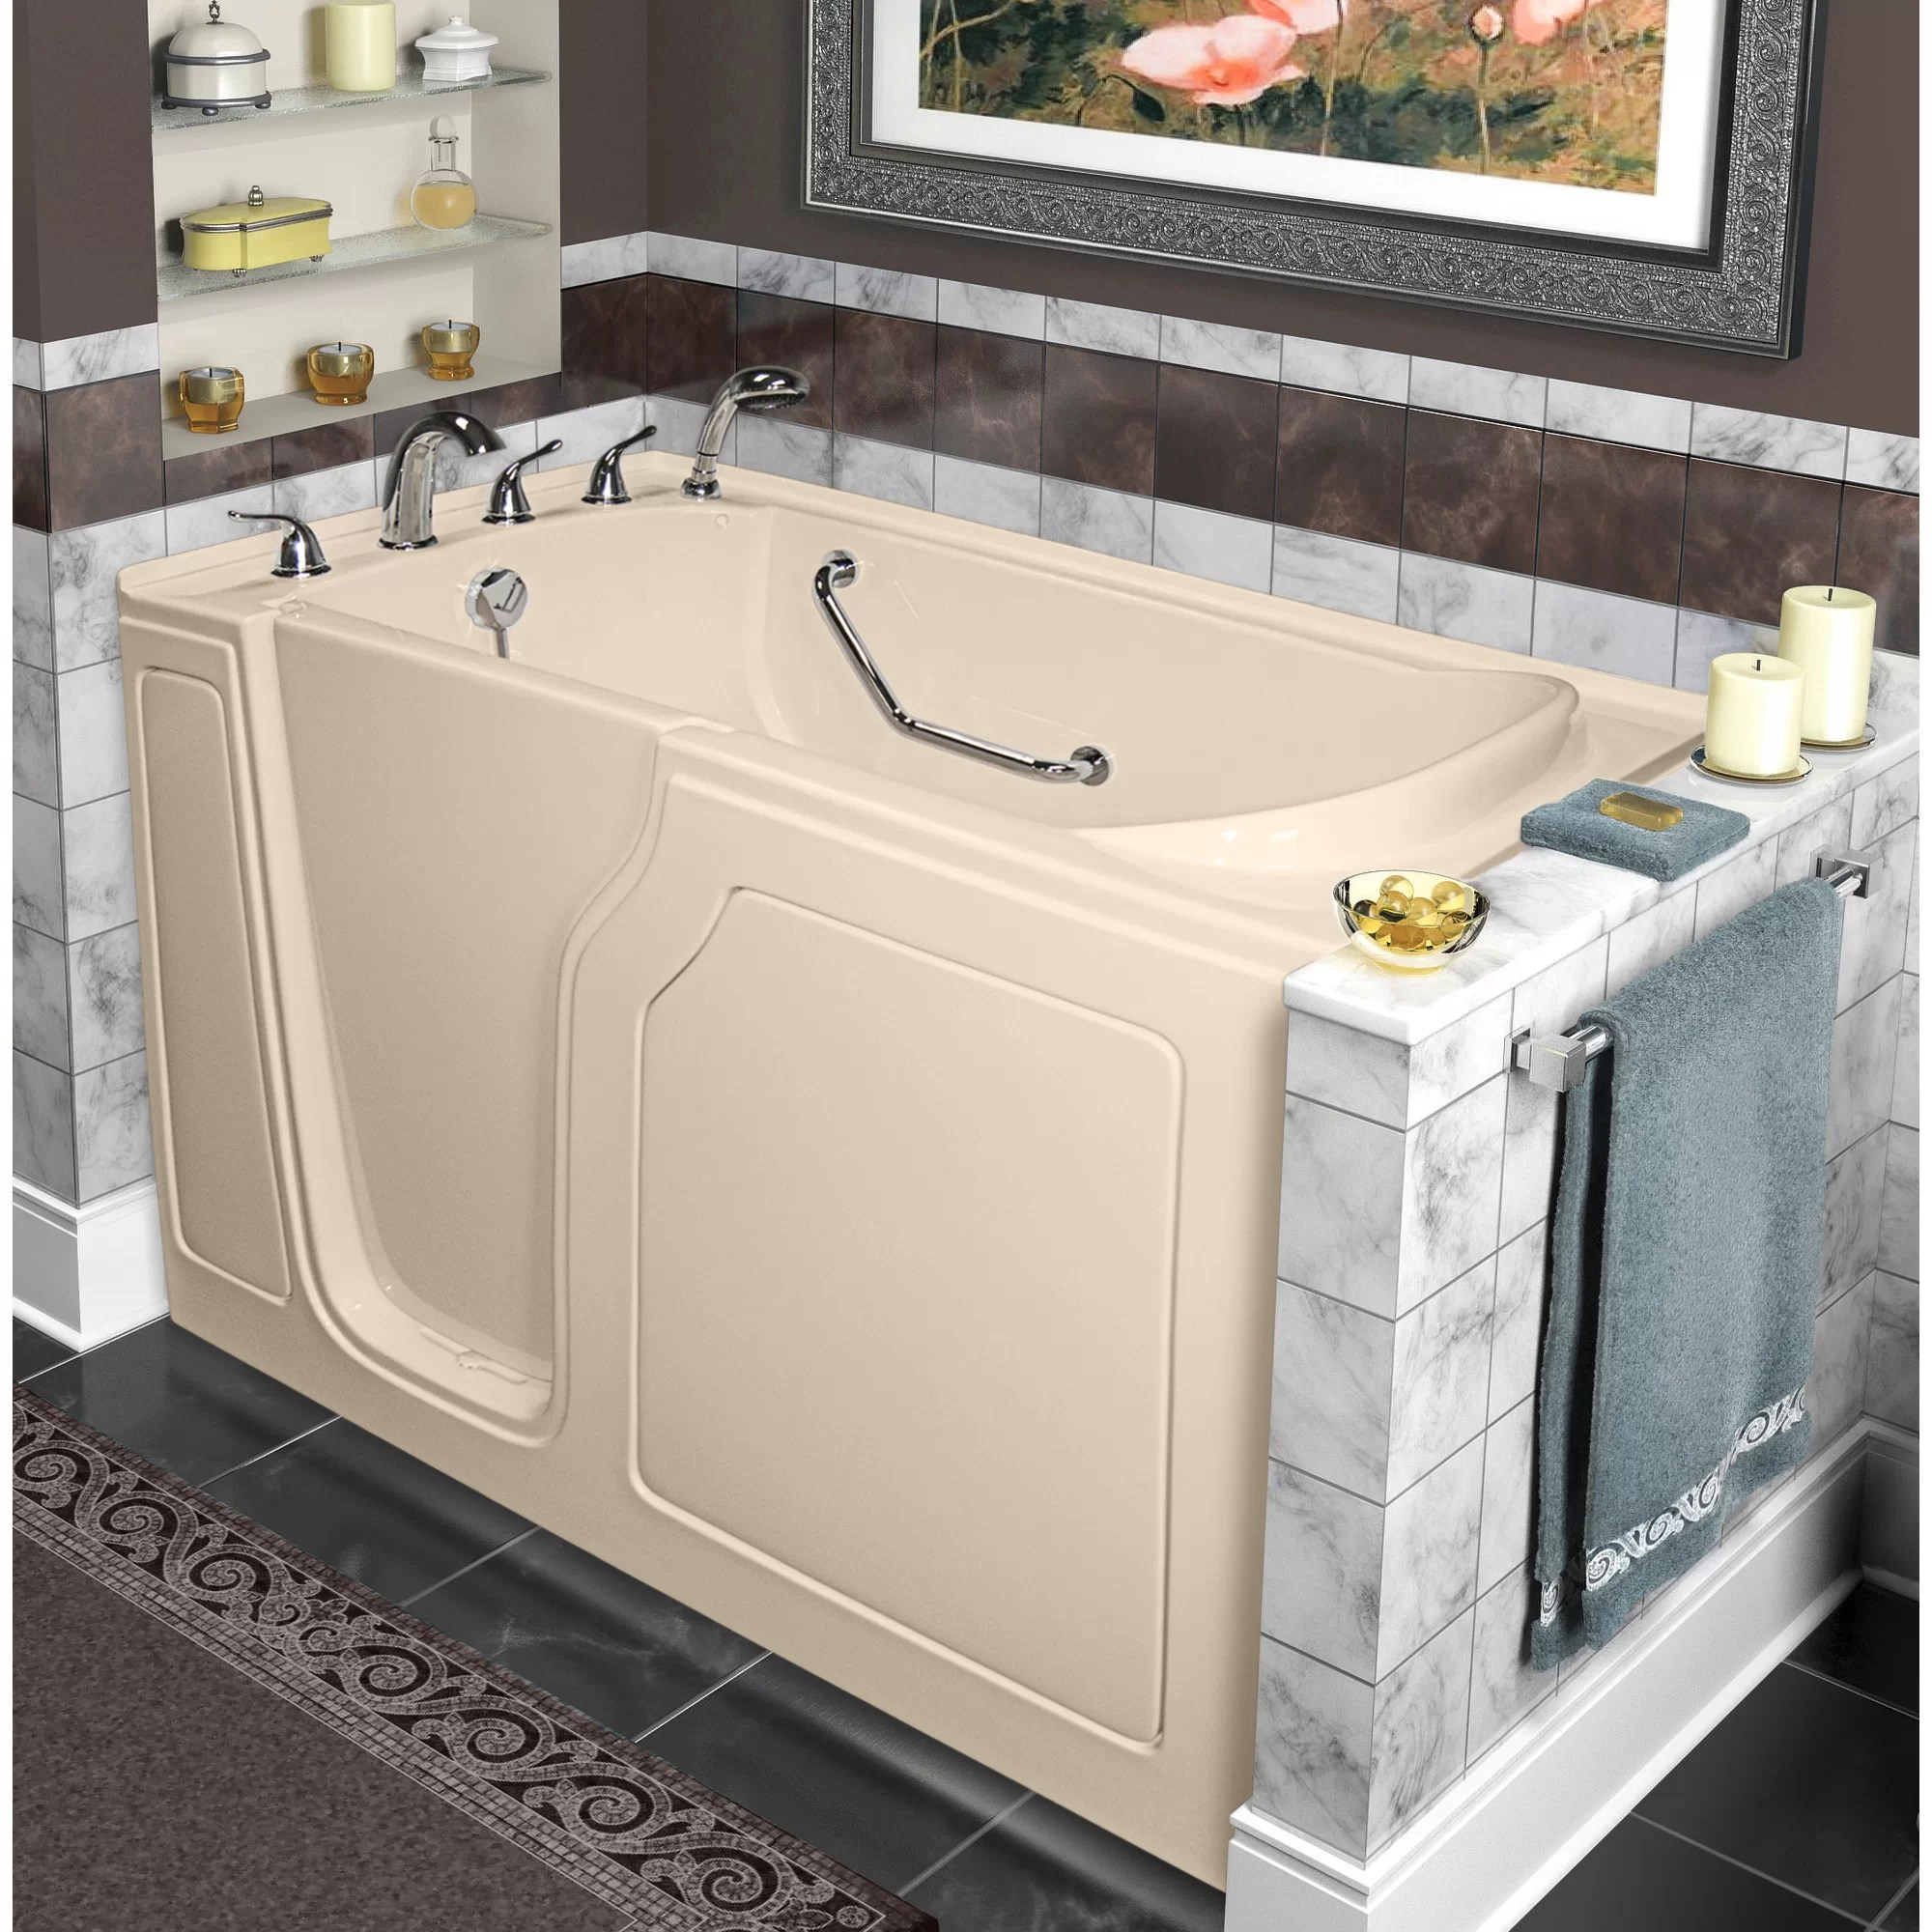 Dignity 48 x 28 Whirlpool and Air Jetted WalkIn Bathtub  Wayfair